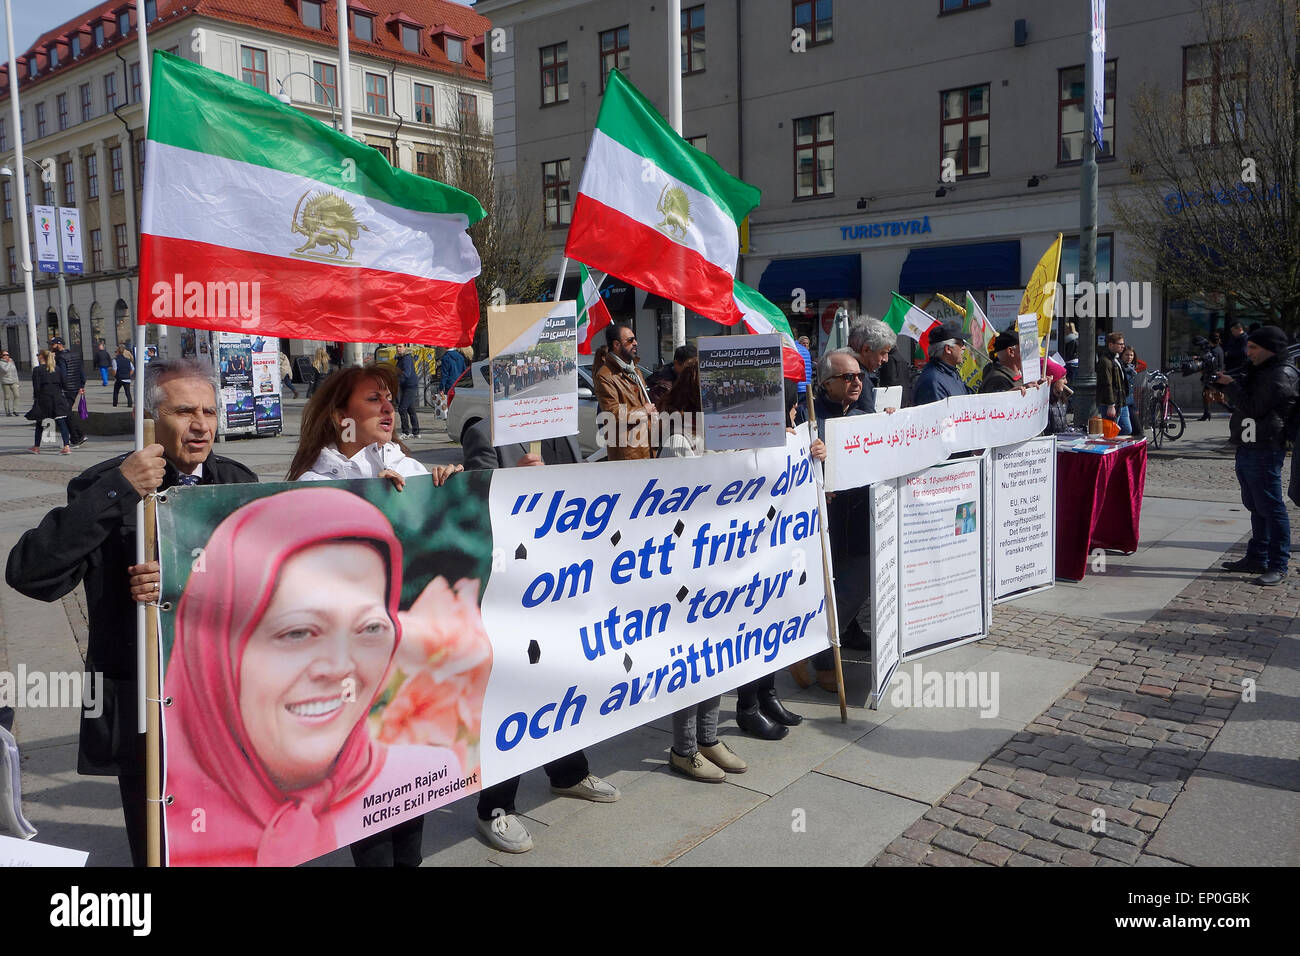 Iranians in exile protest against Iranian government at Kungsportsplatsen square in Gothenburg, Sweden - Stock Image